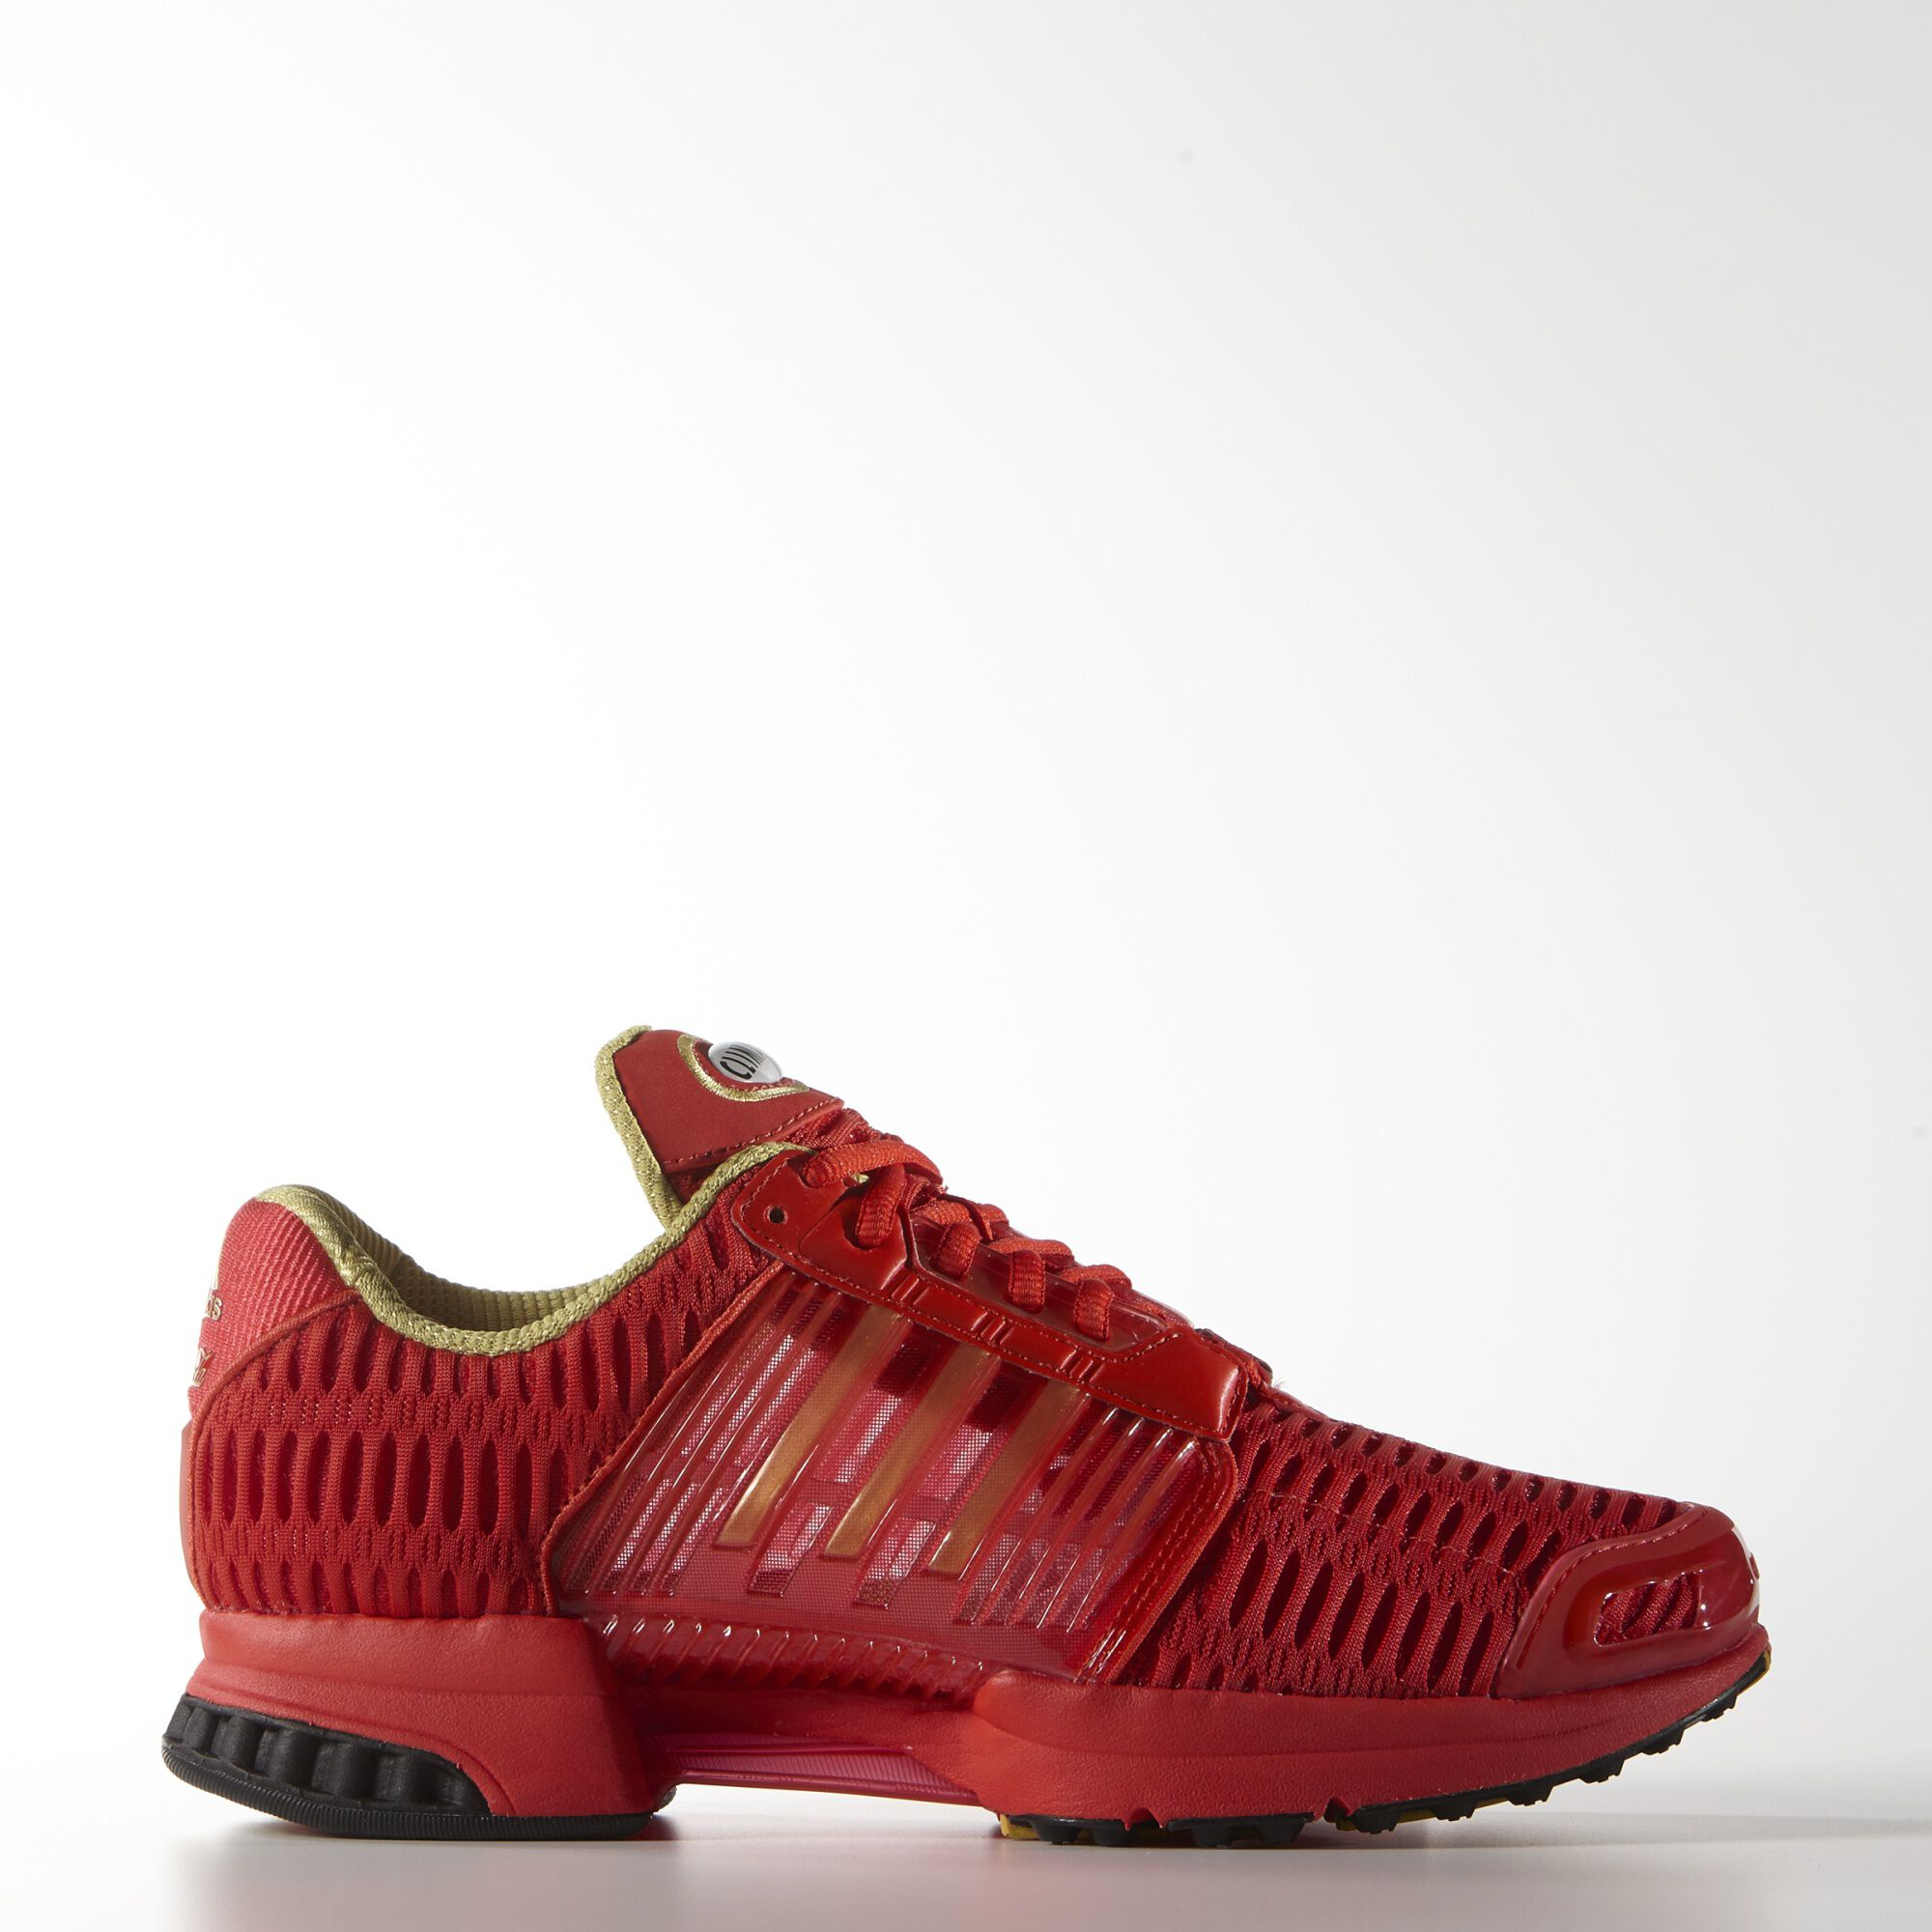 adidas clima cool shoes